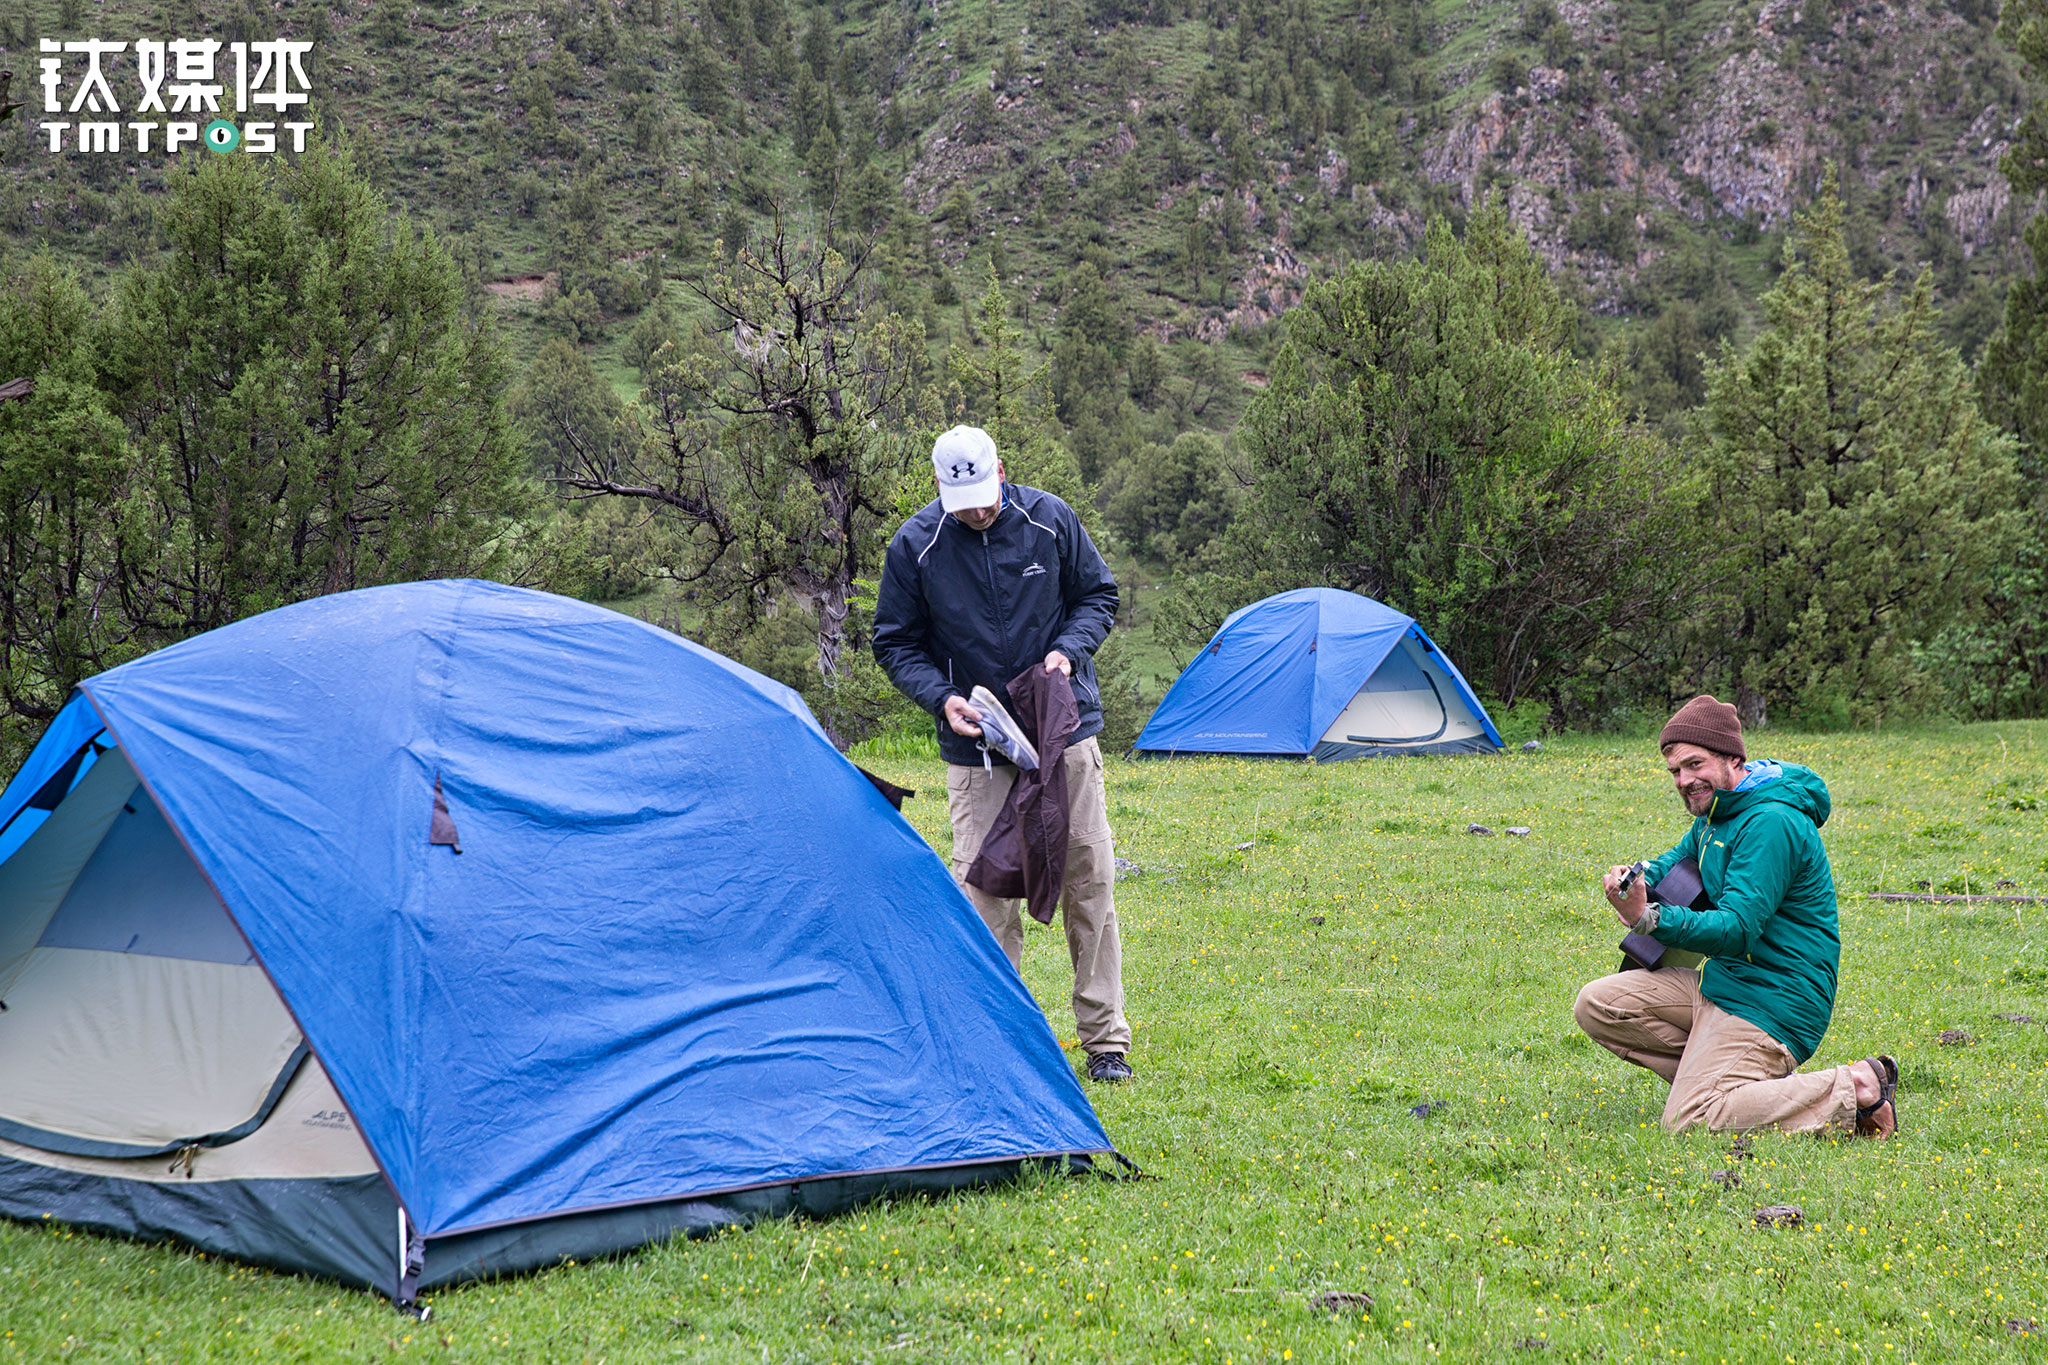 """After a small rain in the morning, the captain blew the horn after preparing breakfast to wake up the rest of the crew. This time, Jed played his guitar in front of the tents to provide """"morning call service""""."""